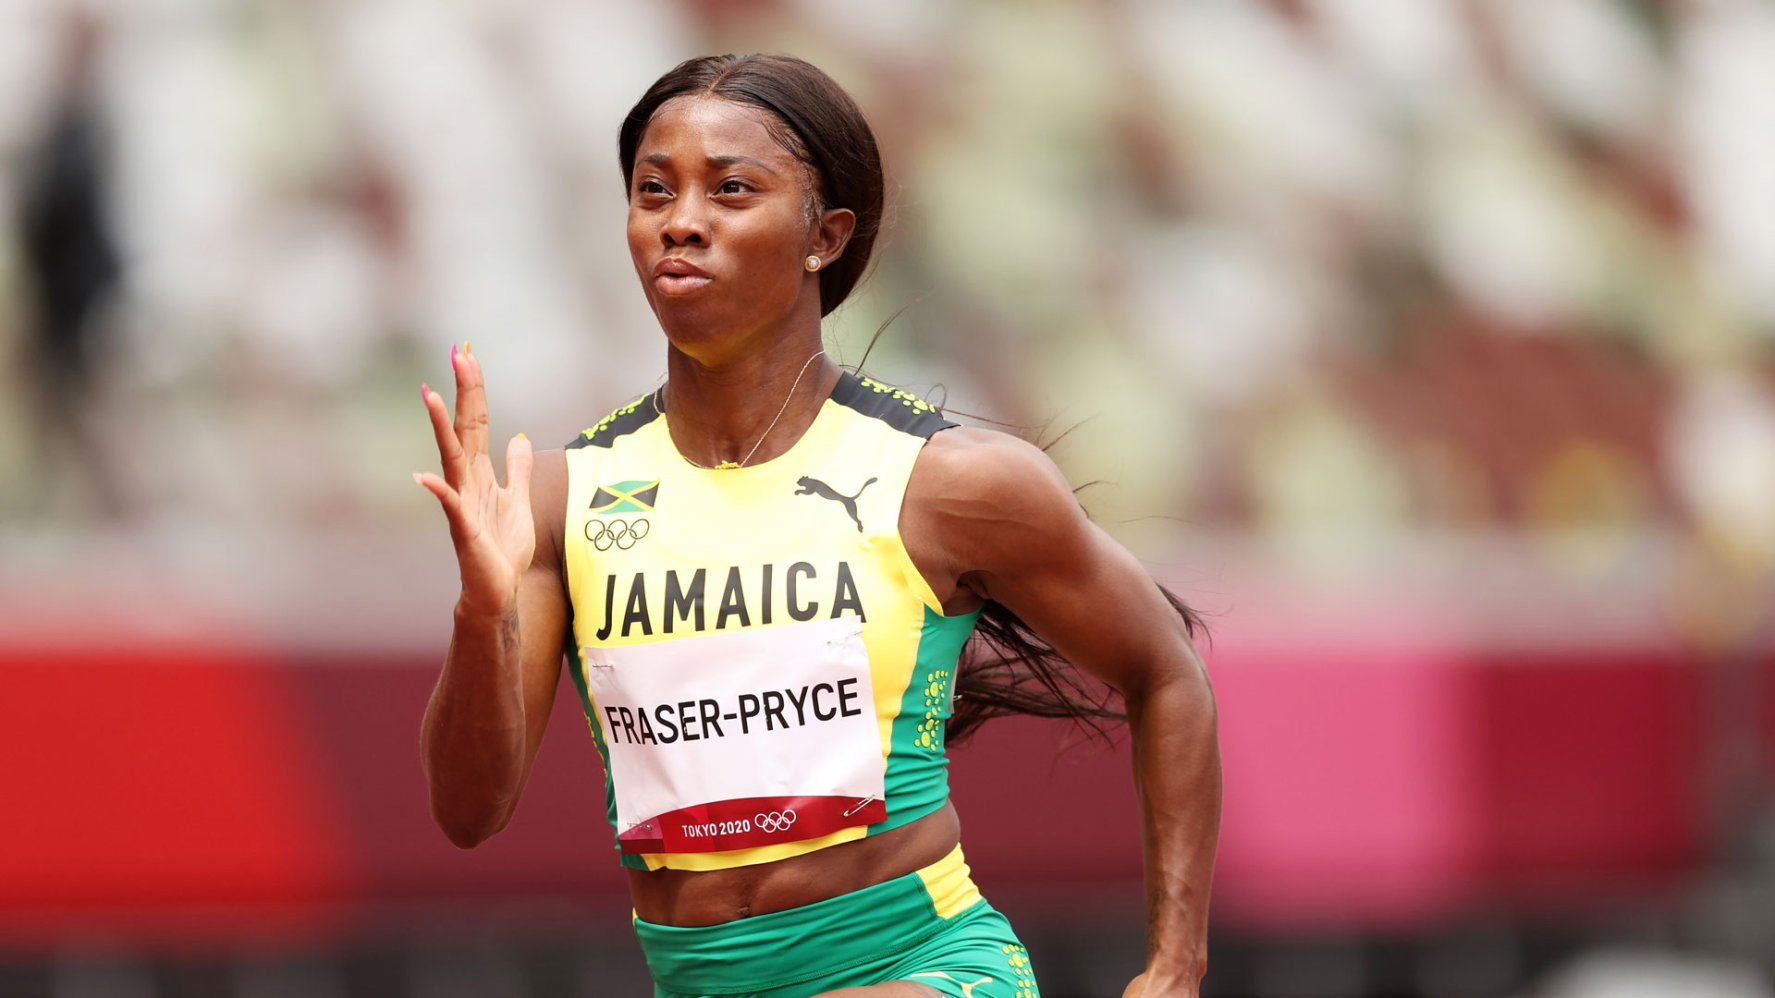 Day 2 of Track and Field Headlined by Women's 100m Final ...